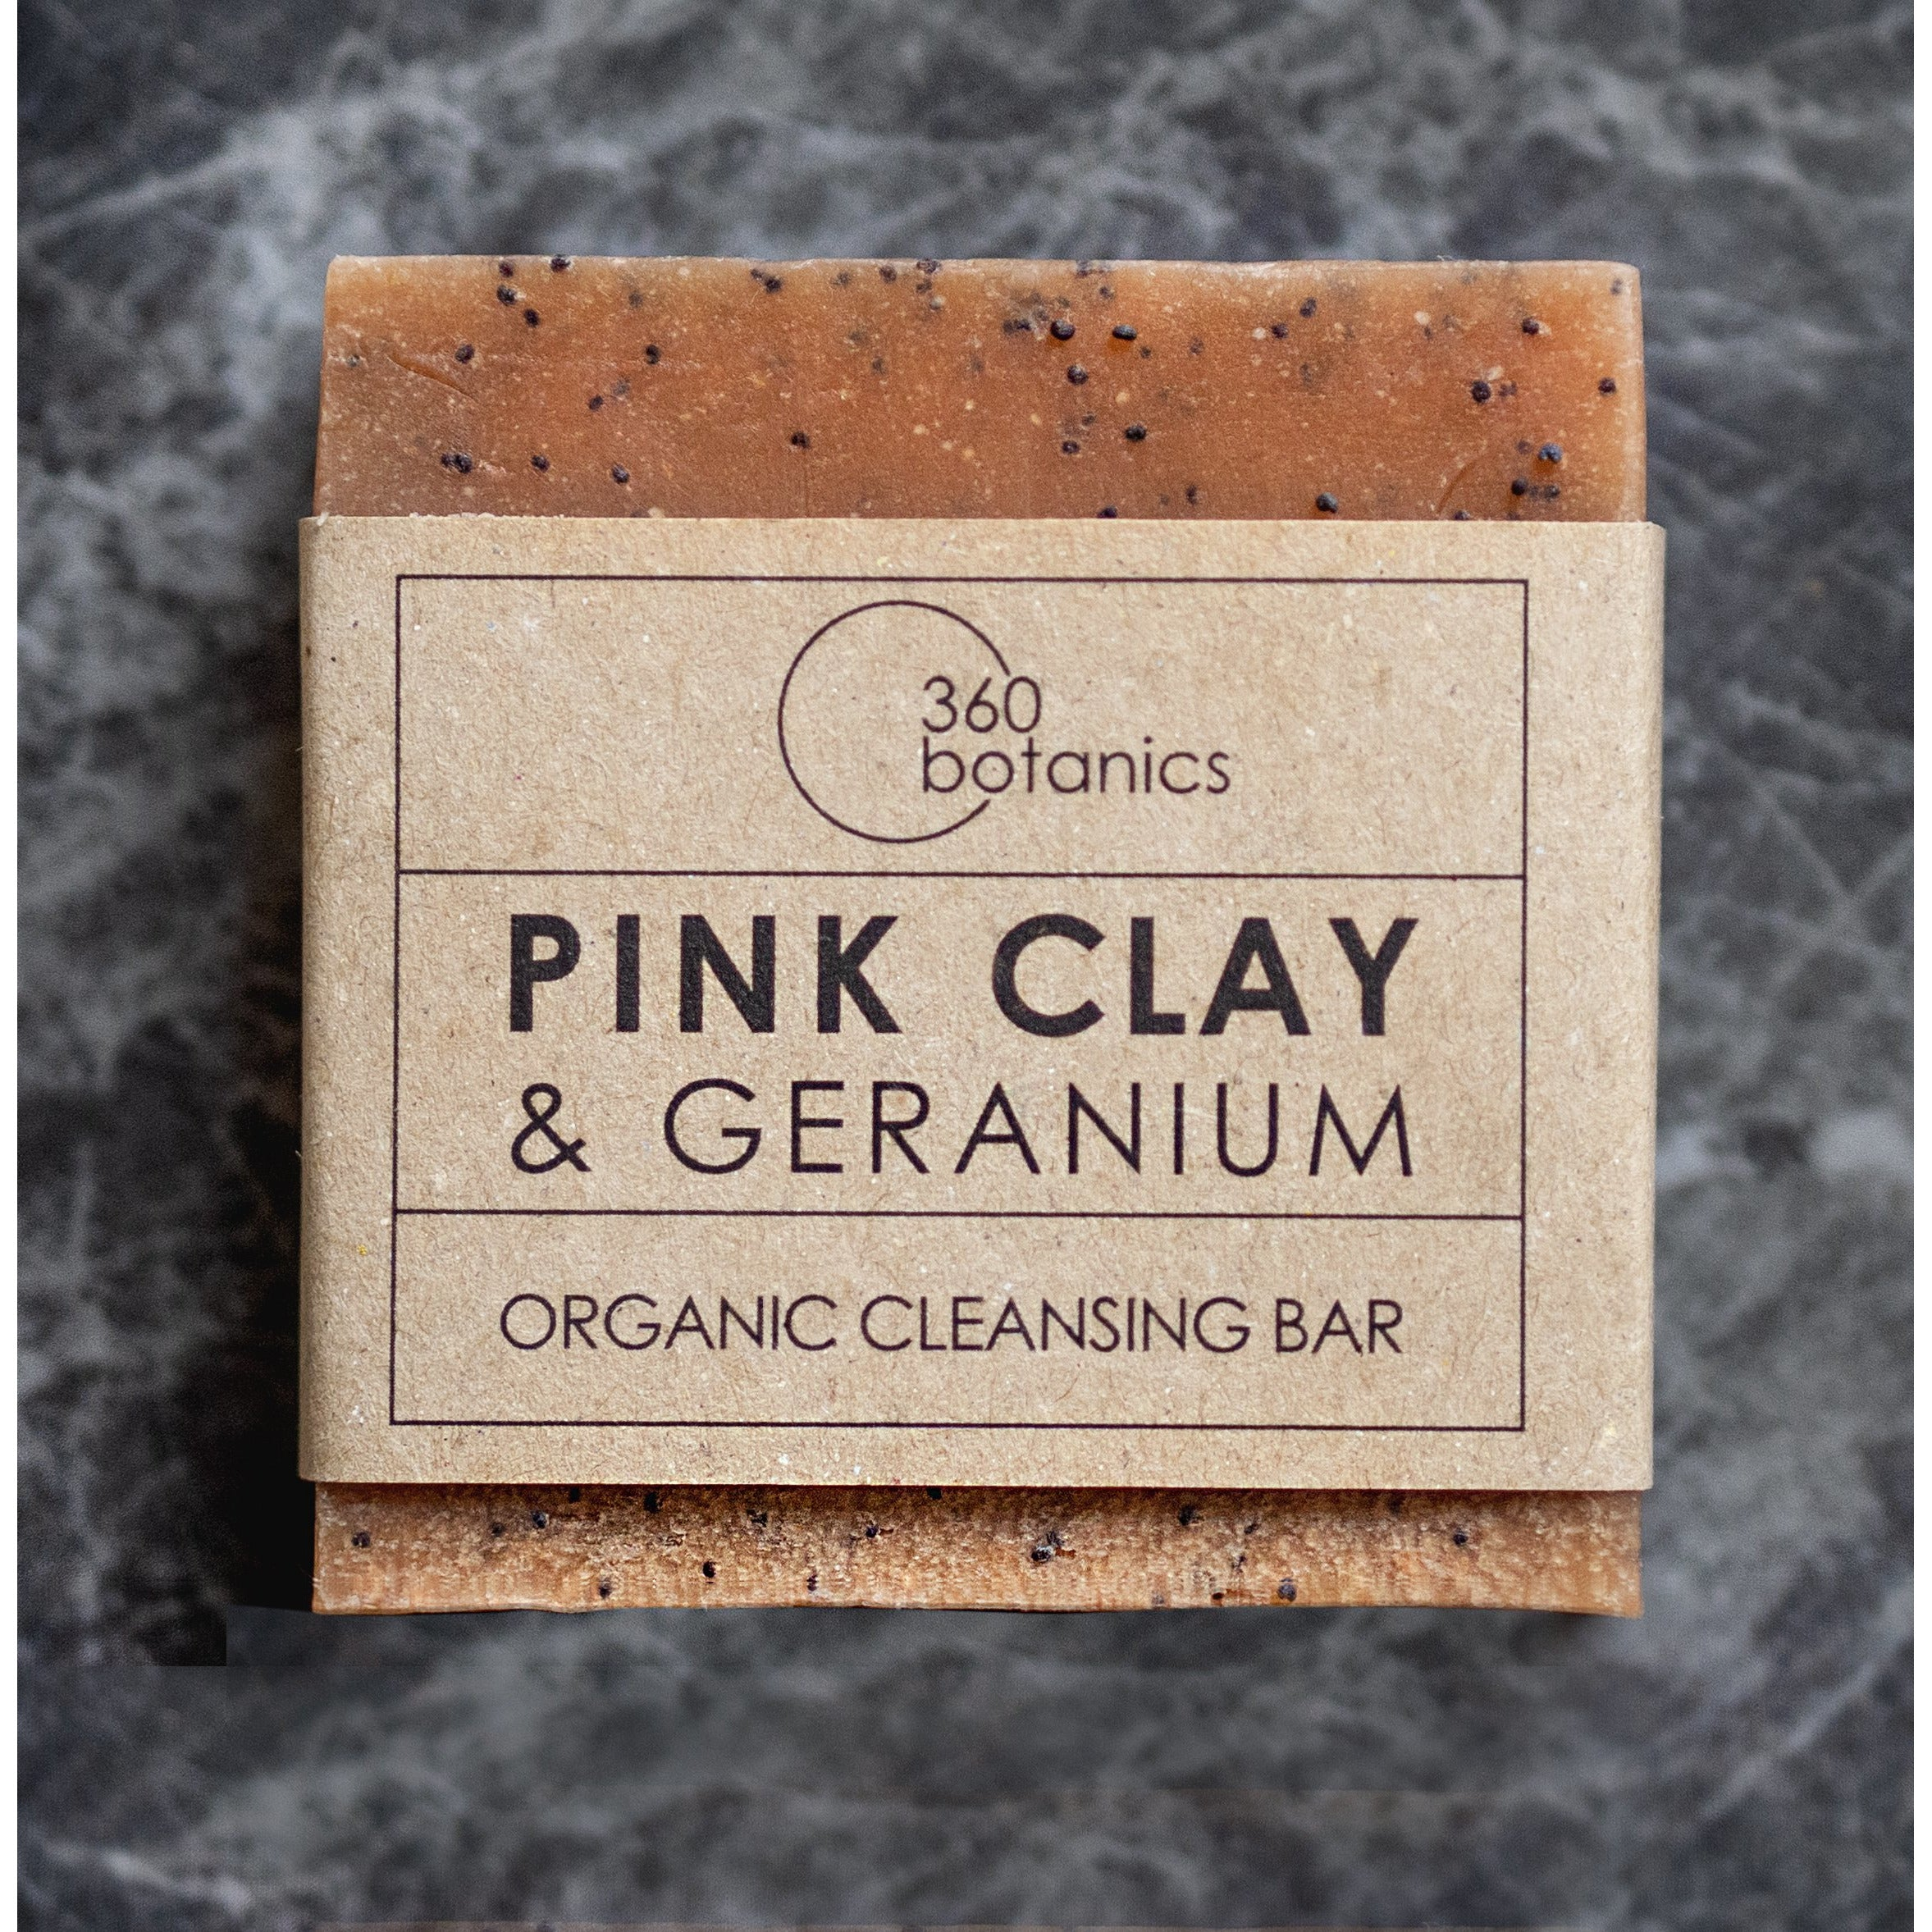 Image of Pink Clay and Geranium Soap gift set